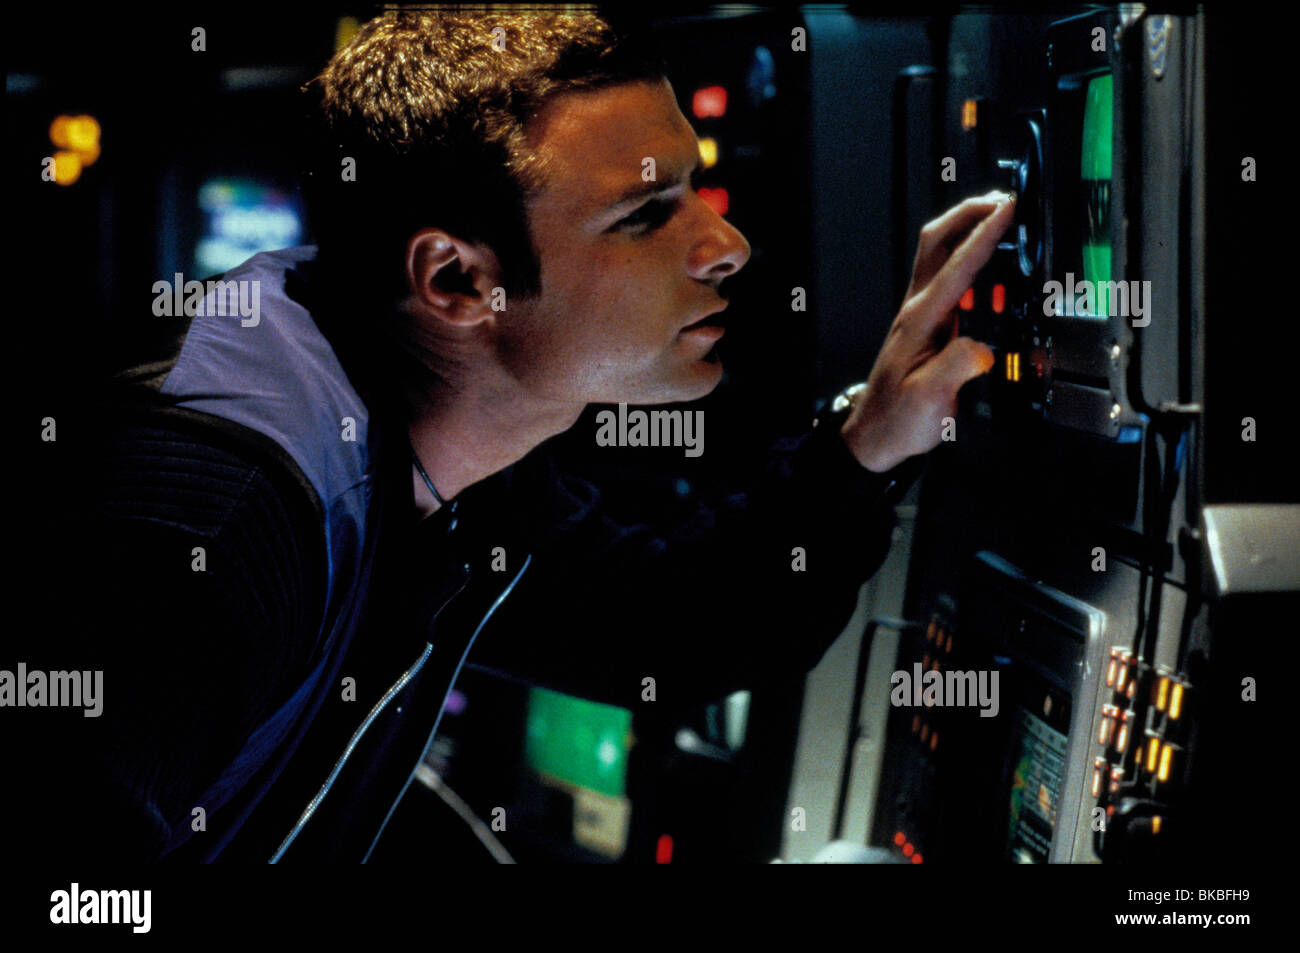 SPHERE -1998 LIEV SCHREIBER Stock Photo, Royalty Free ...